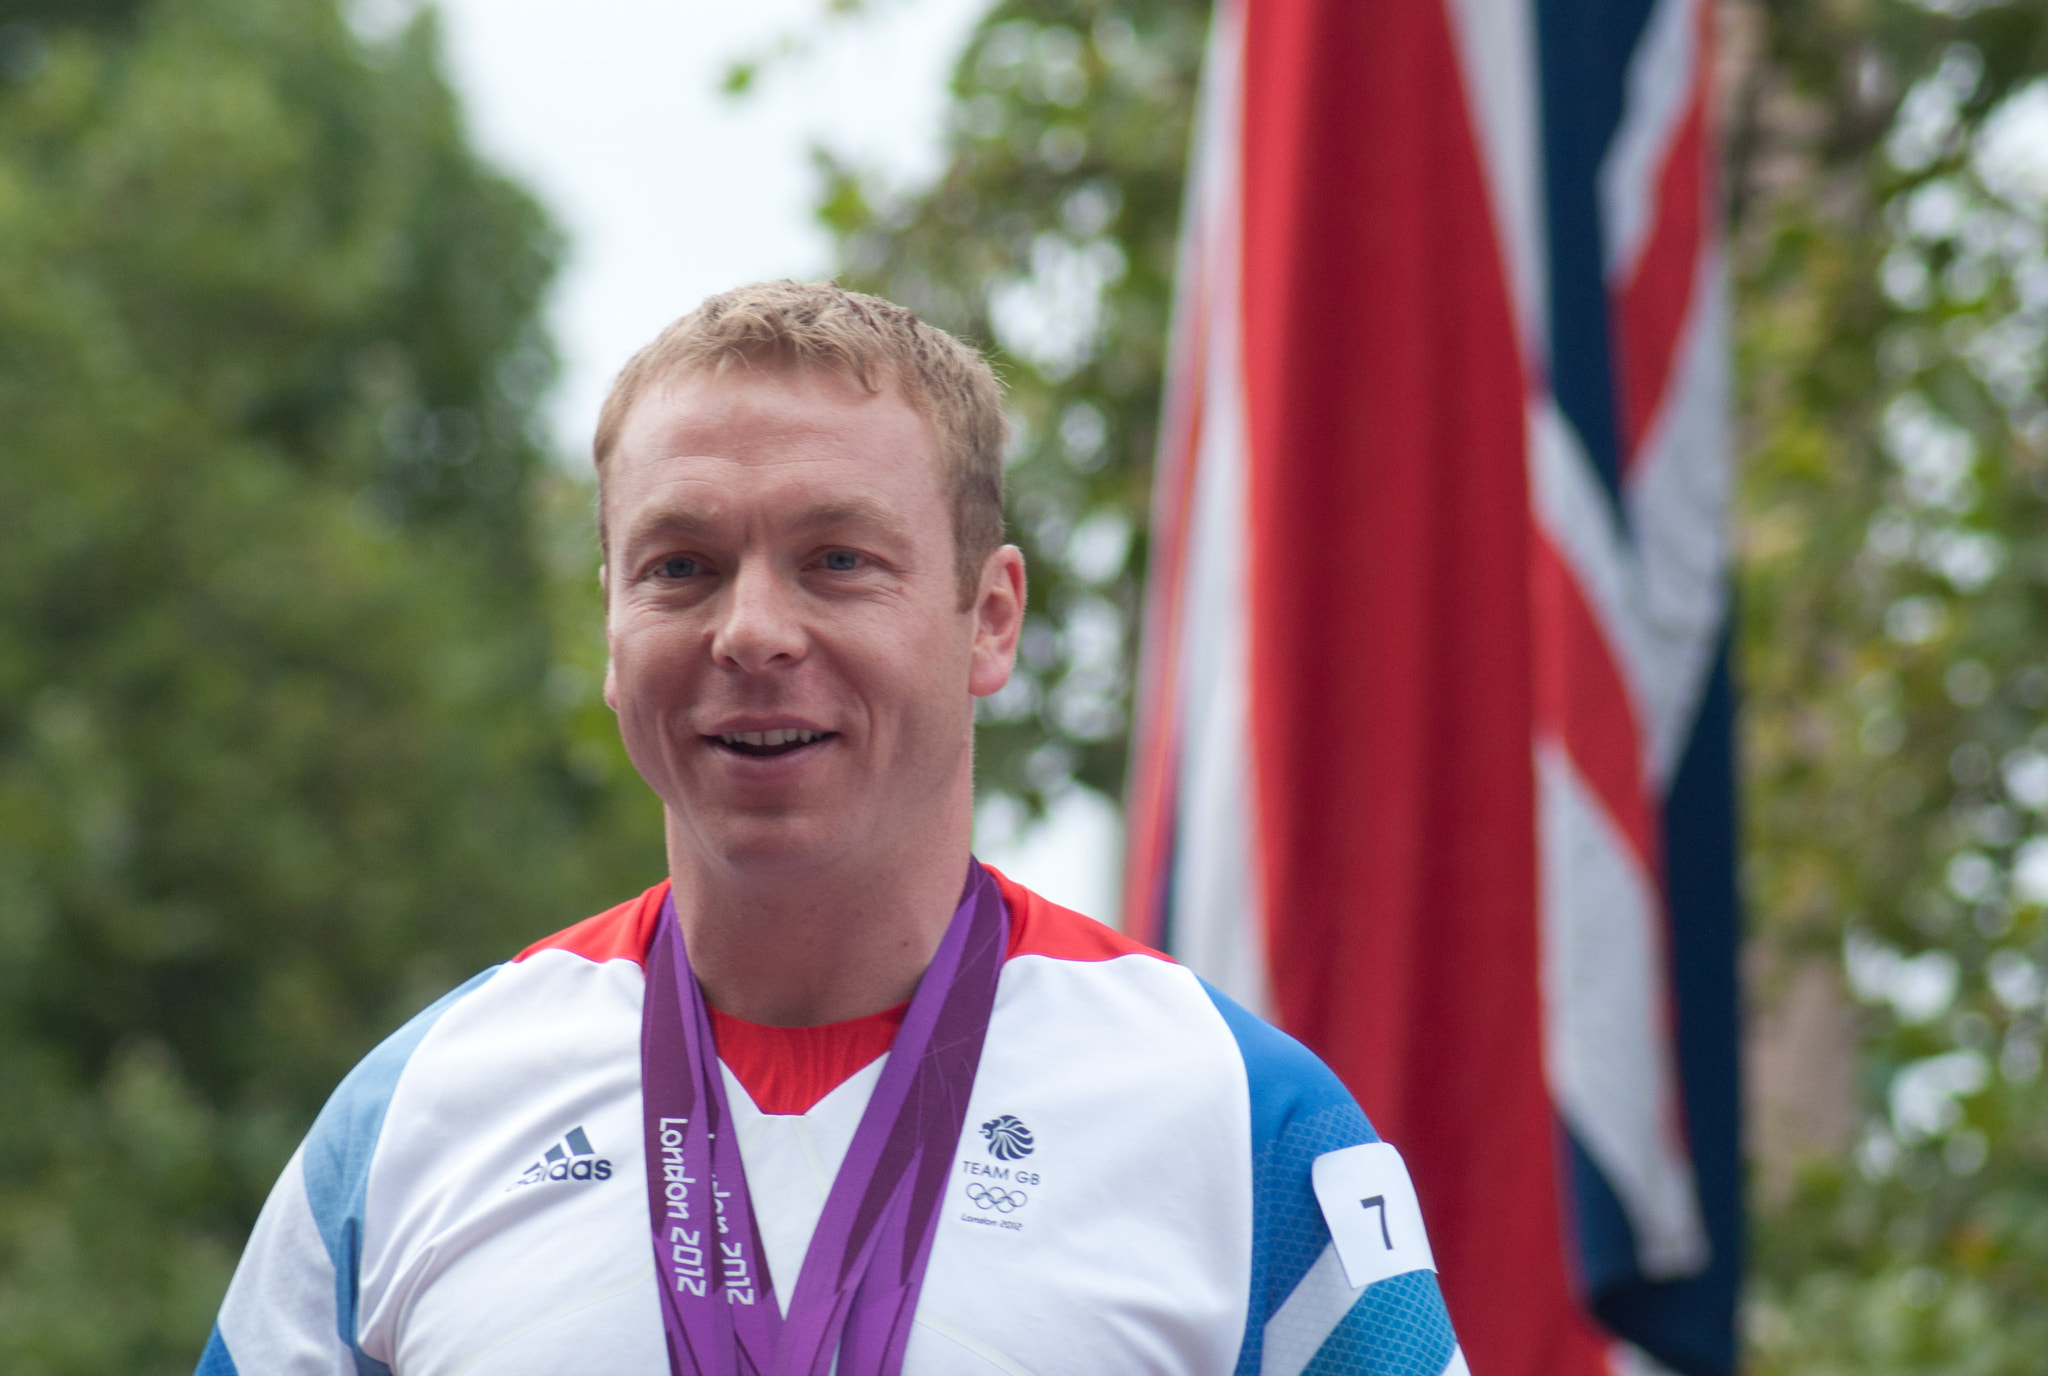 Photograph Sir Chris Hoy by Megan Trace on 500px